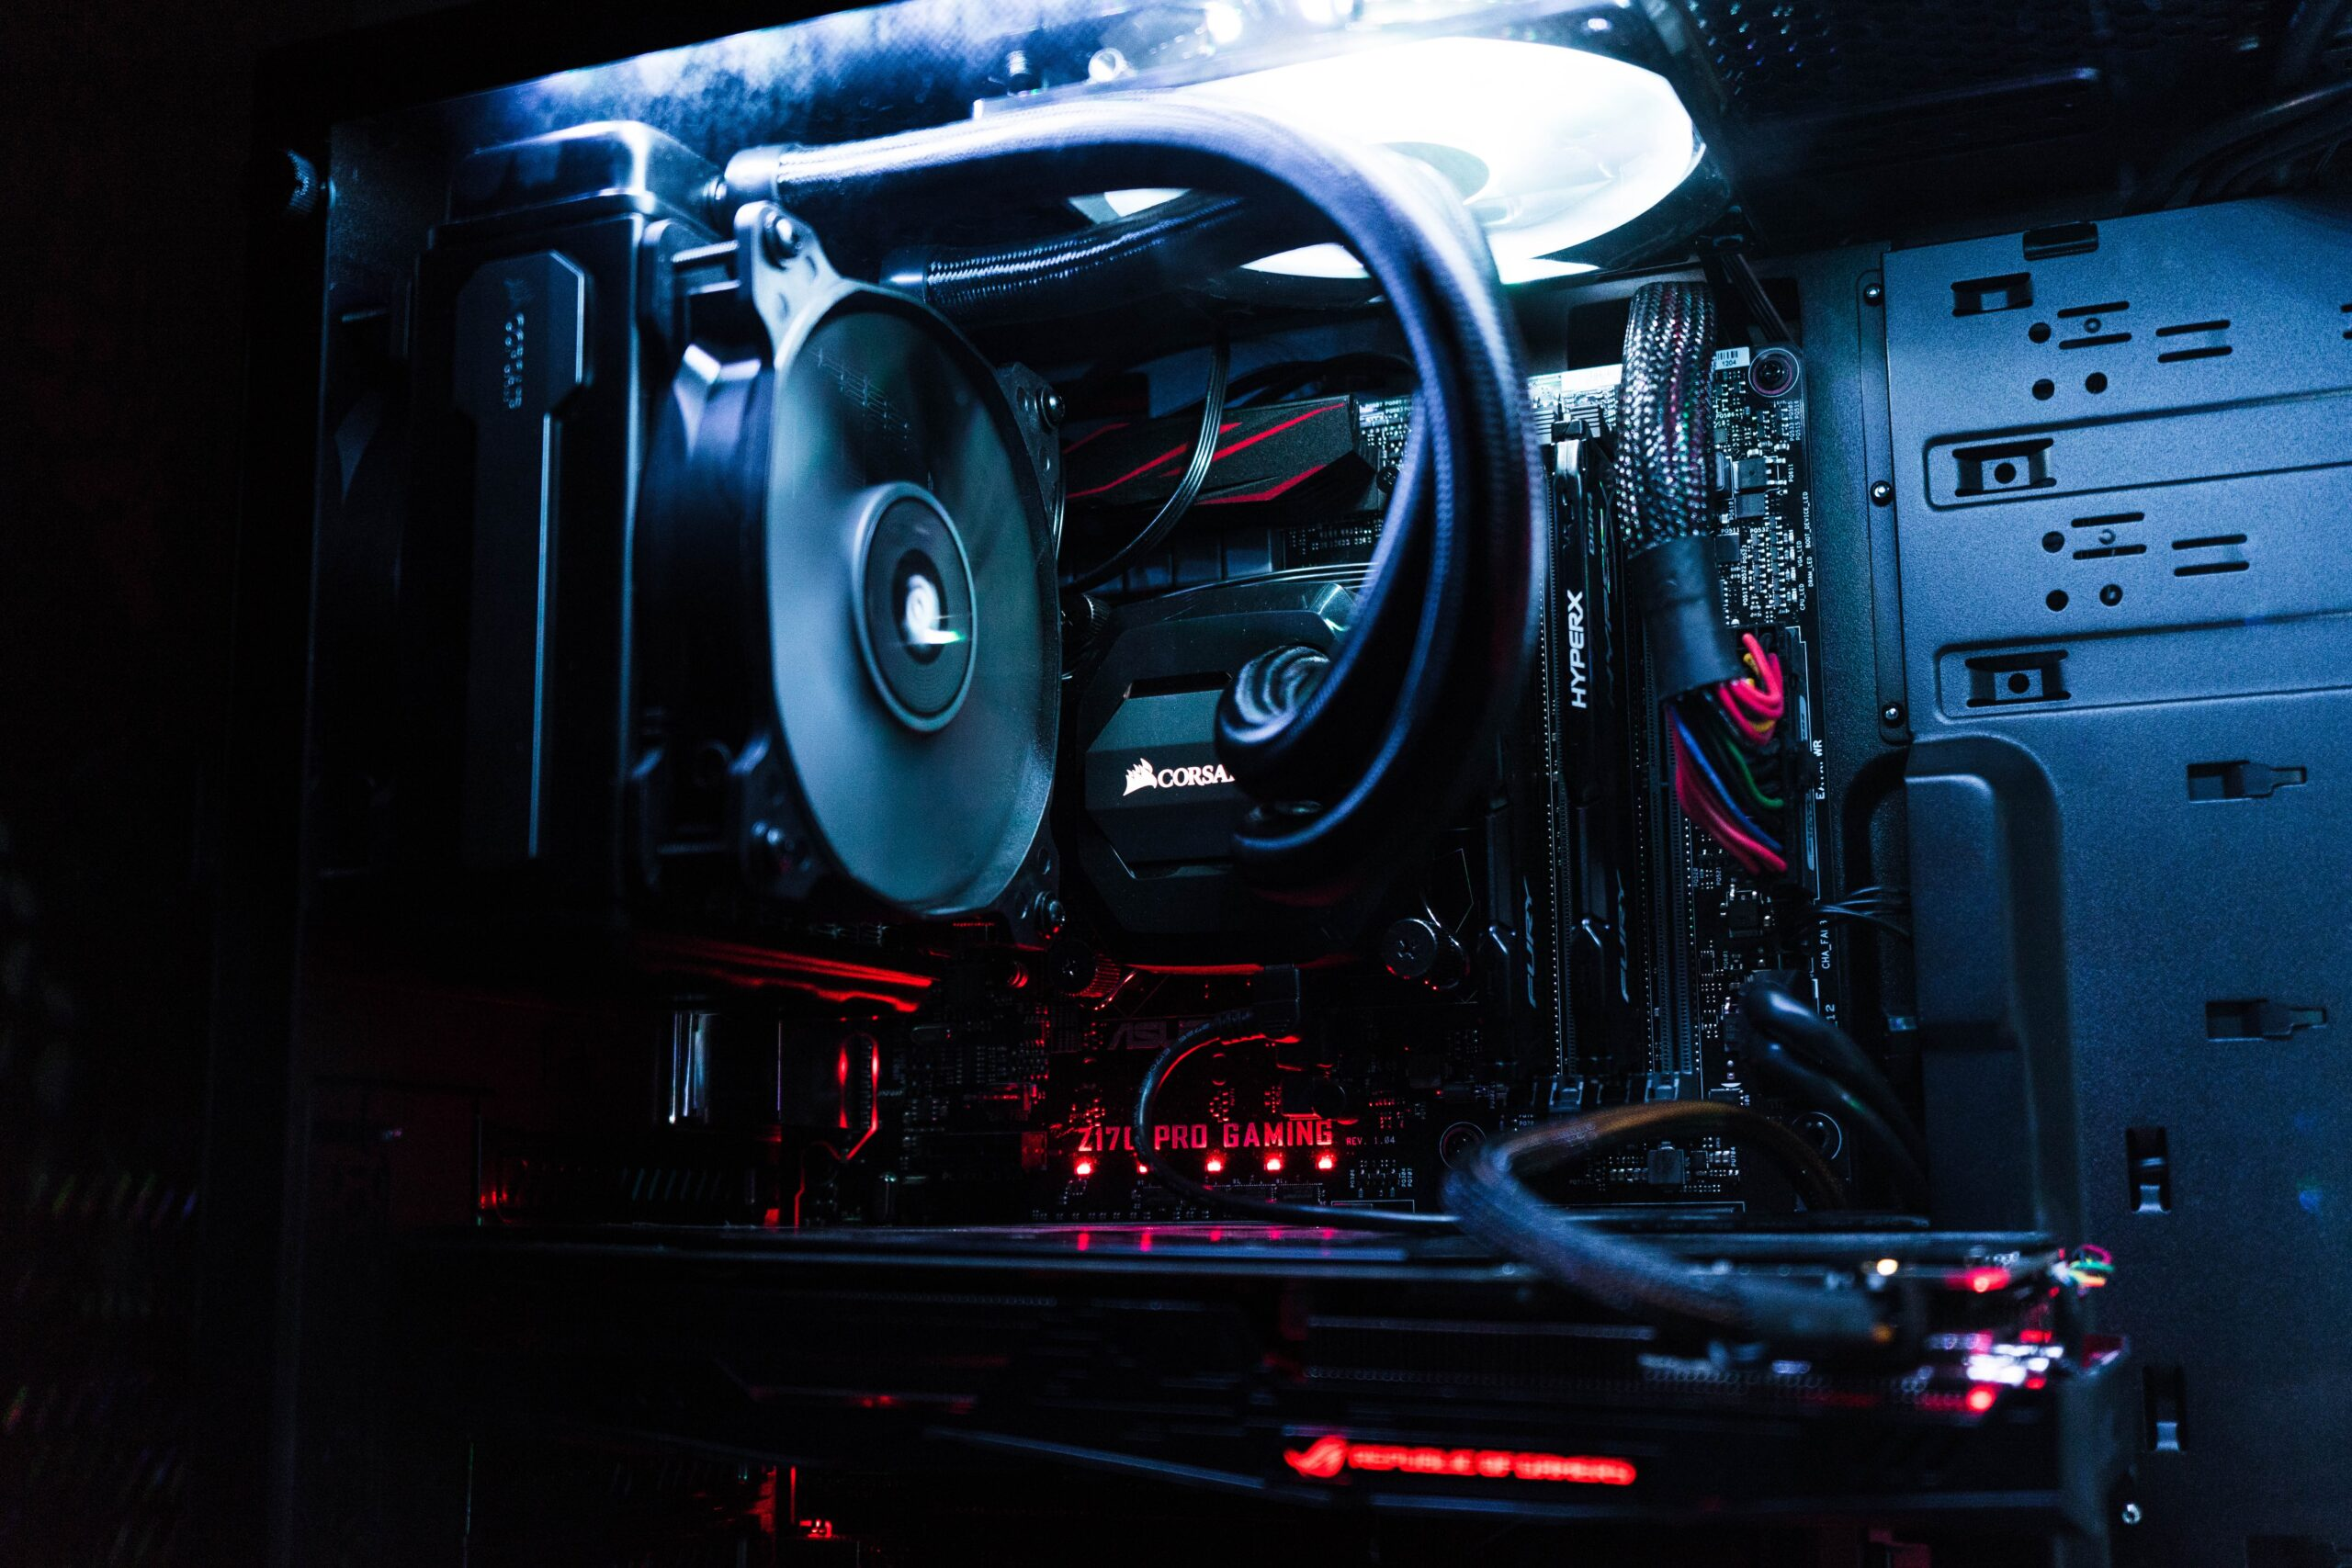 PC case for gamers